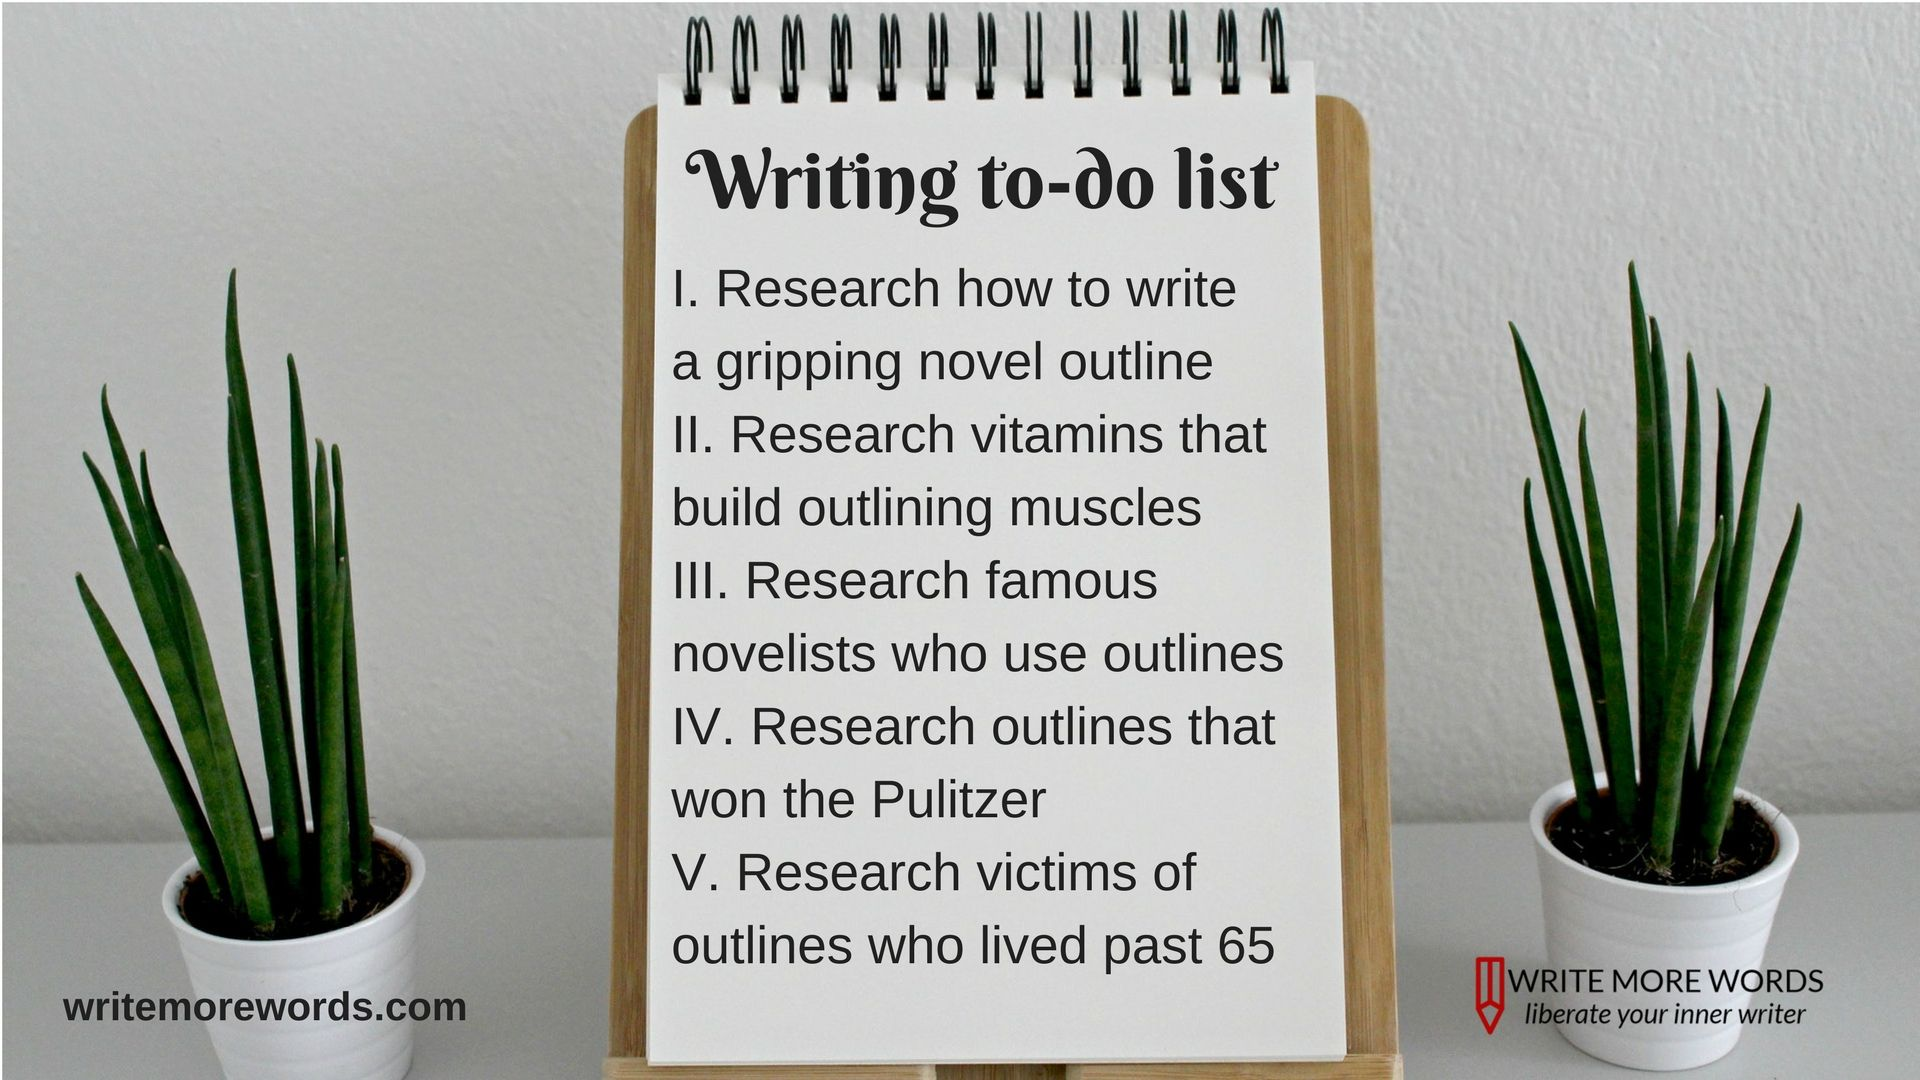 To-do list for writing an outline